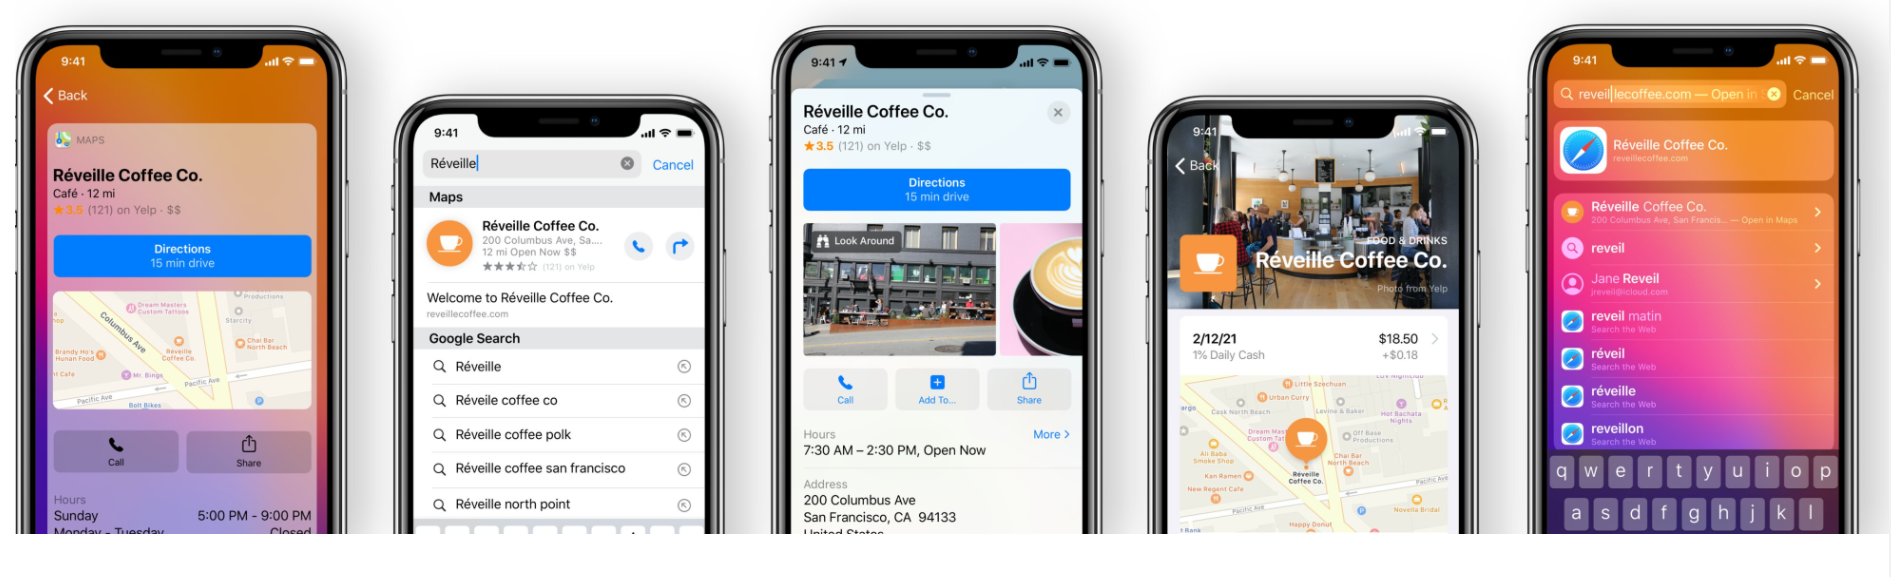 type of apple products on mobile claim apple maps listing